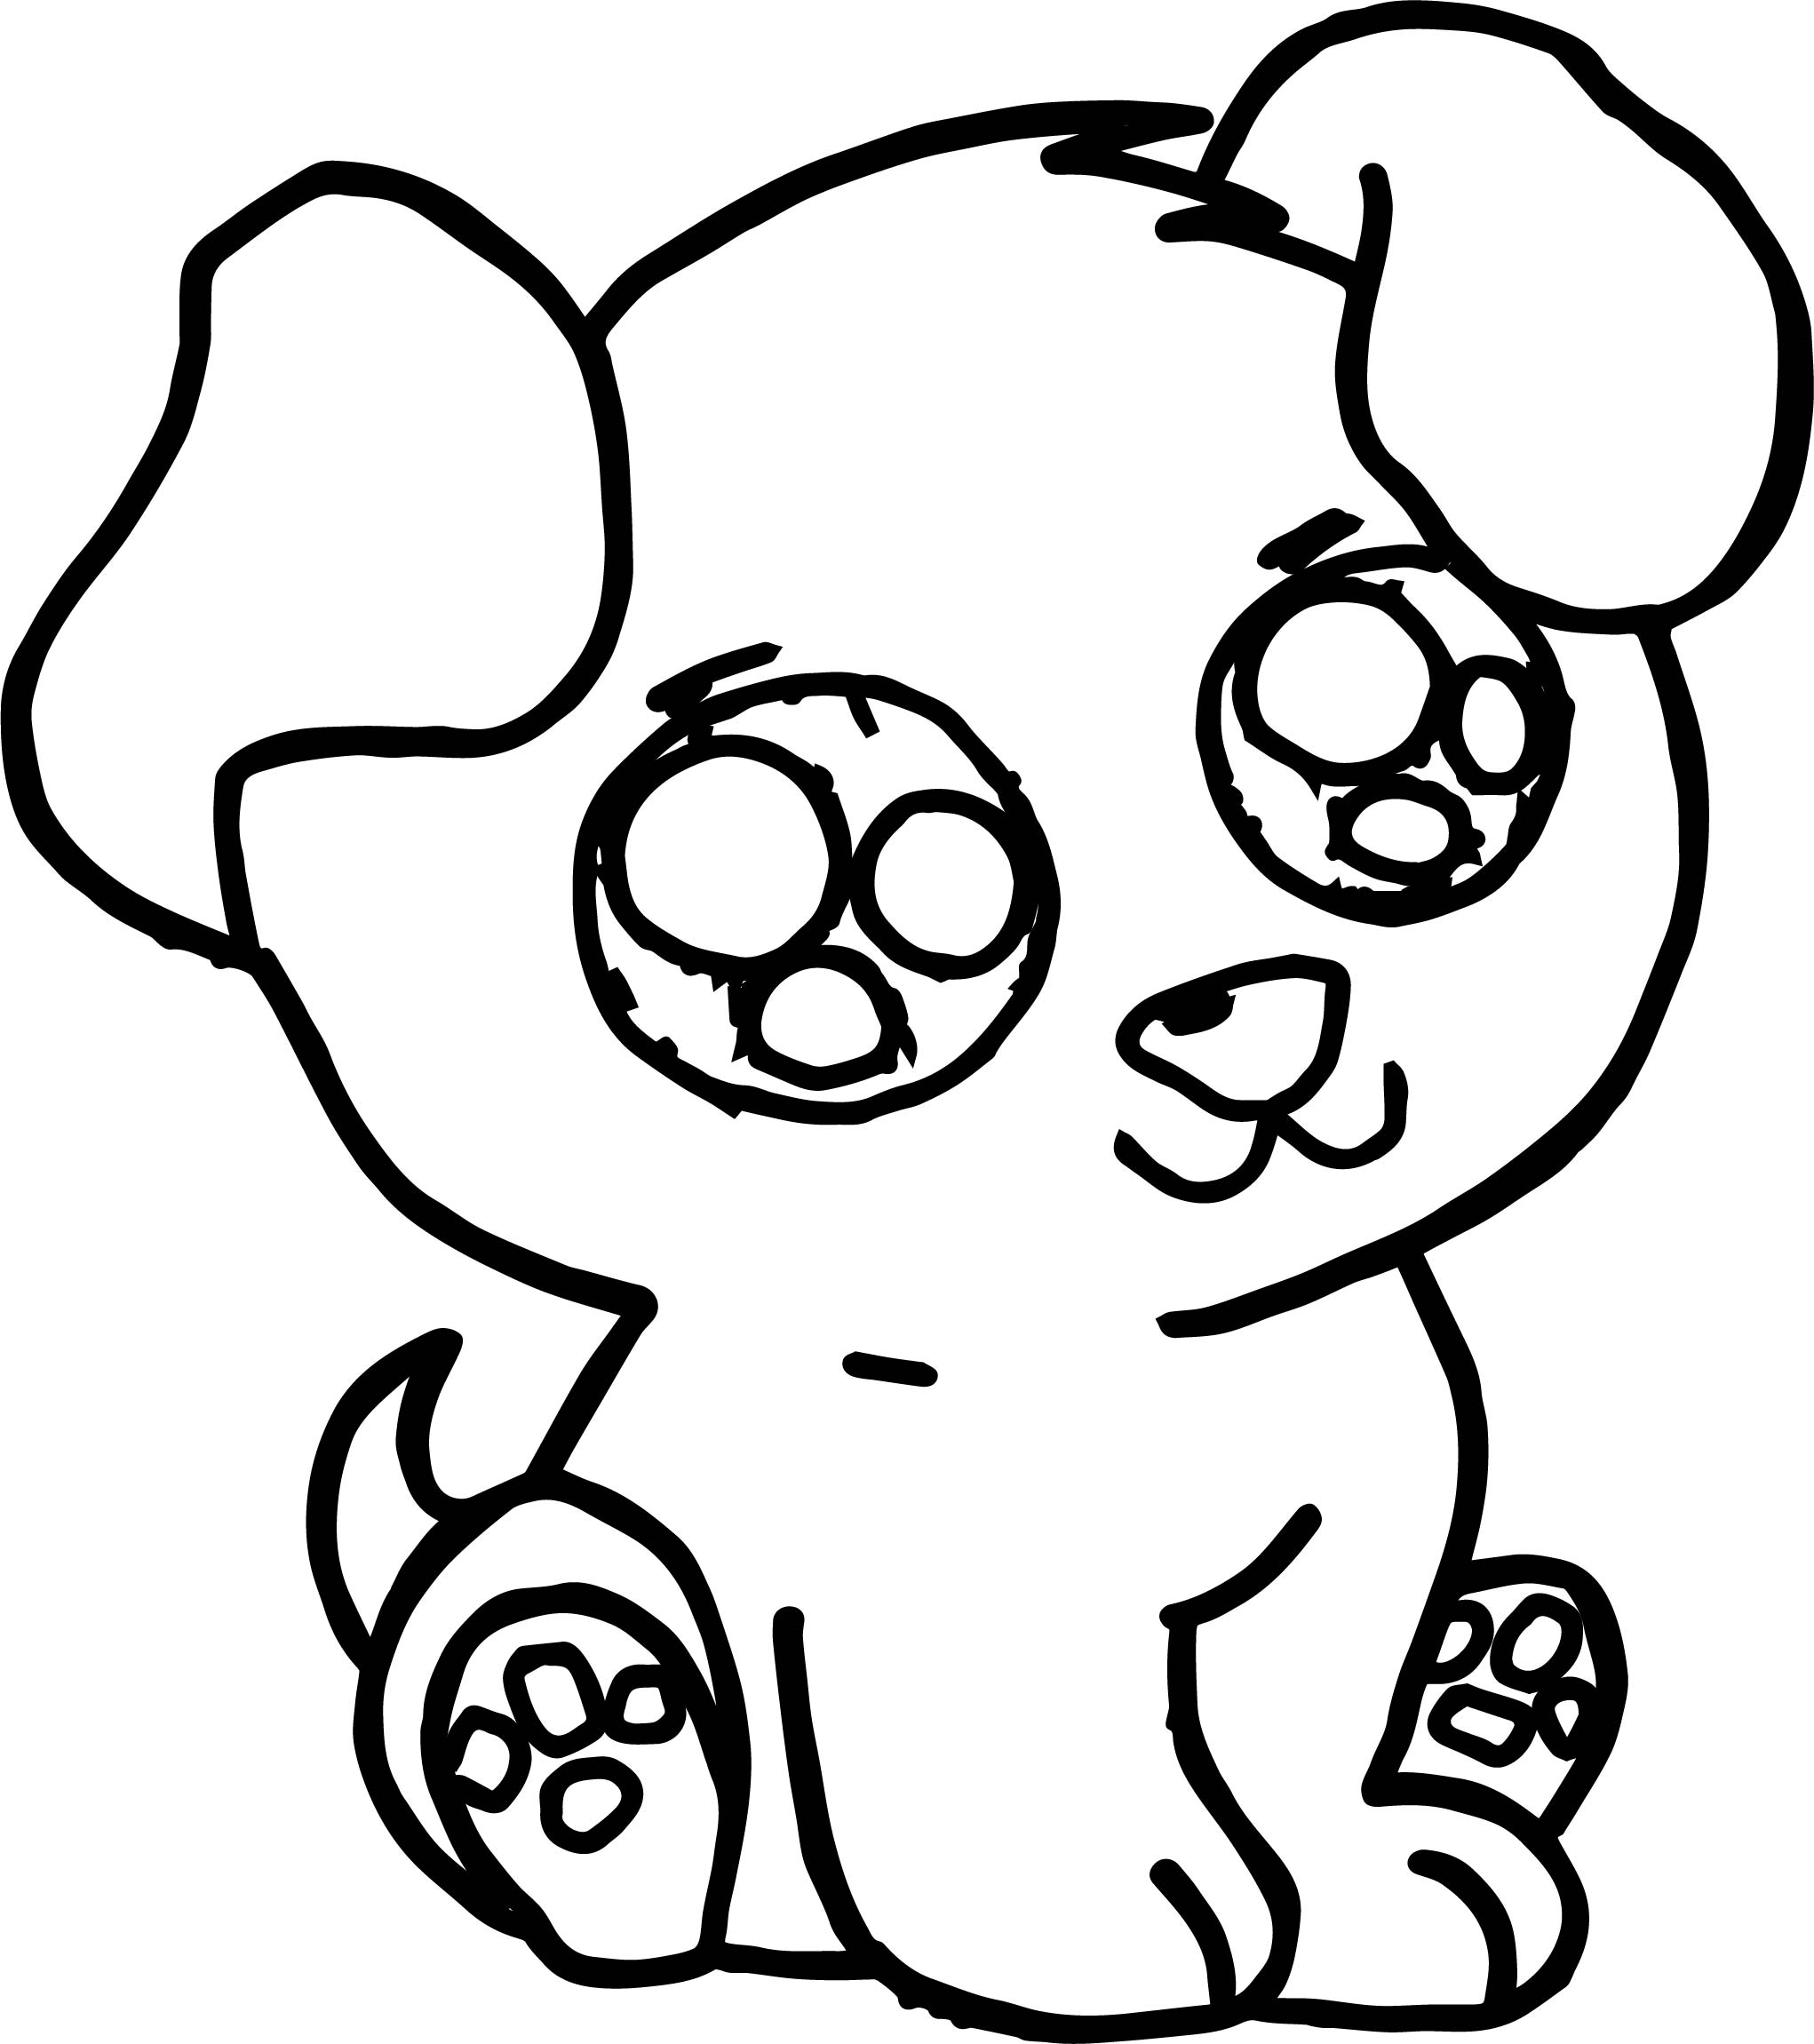 dog coloring beagle coloring pages best coloring pages for kids dog coloring